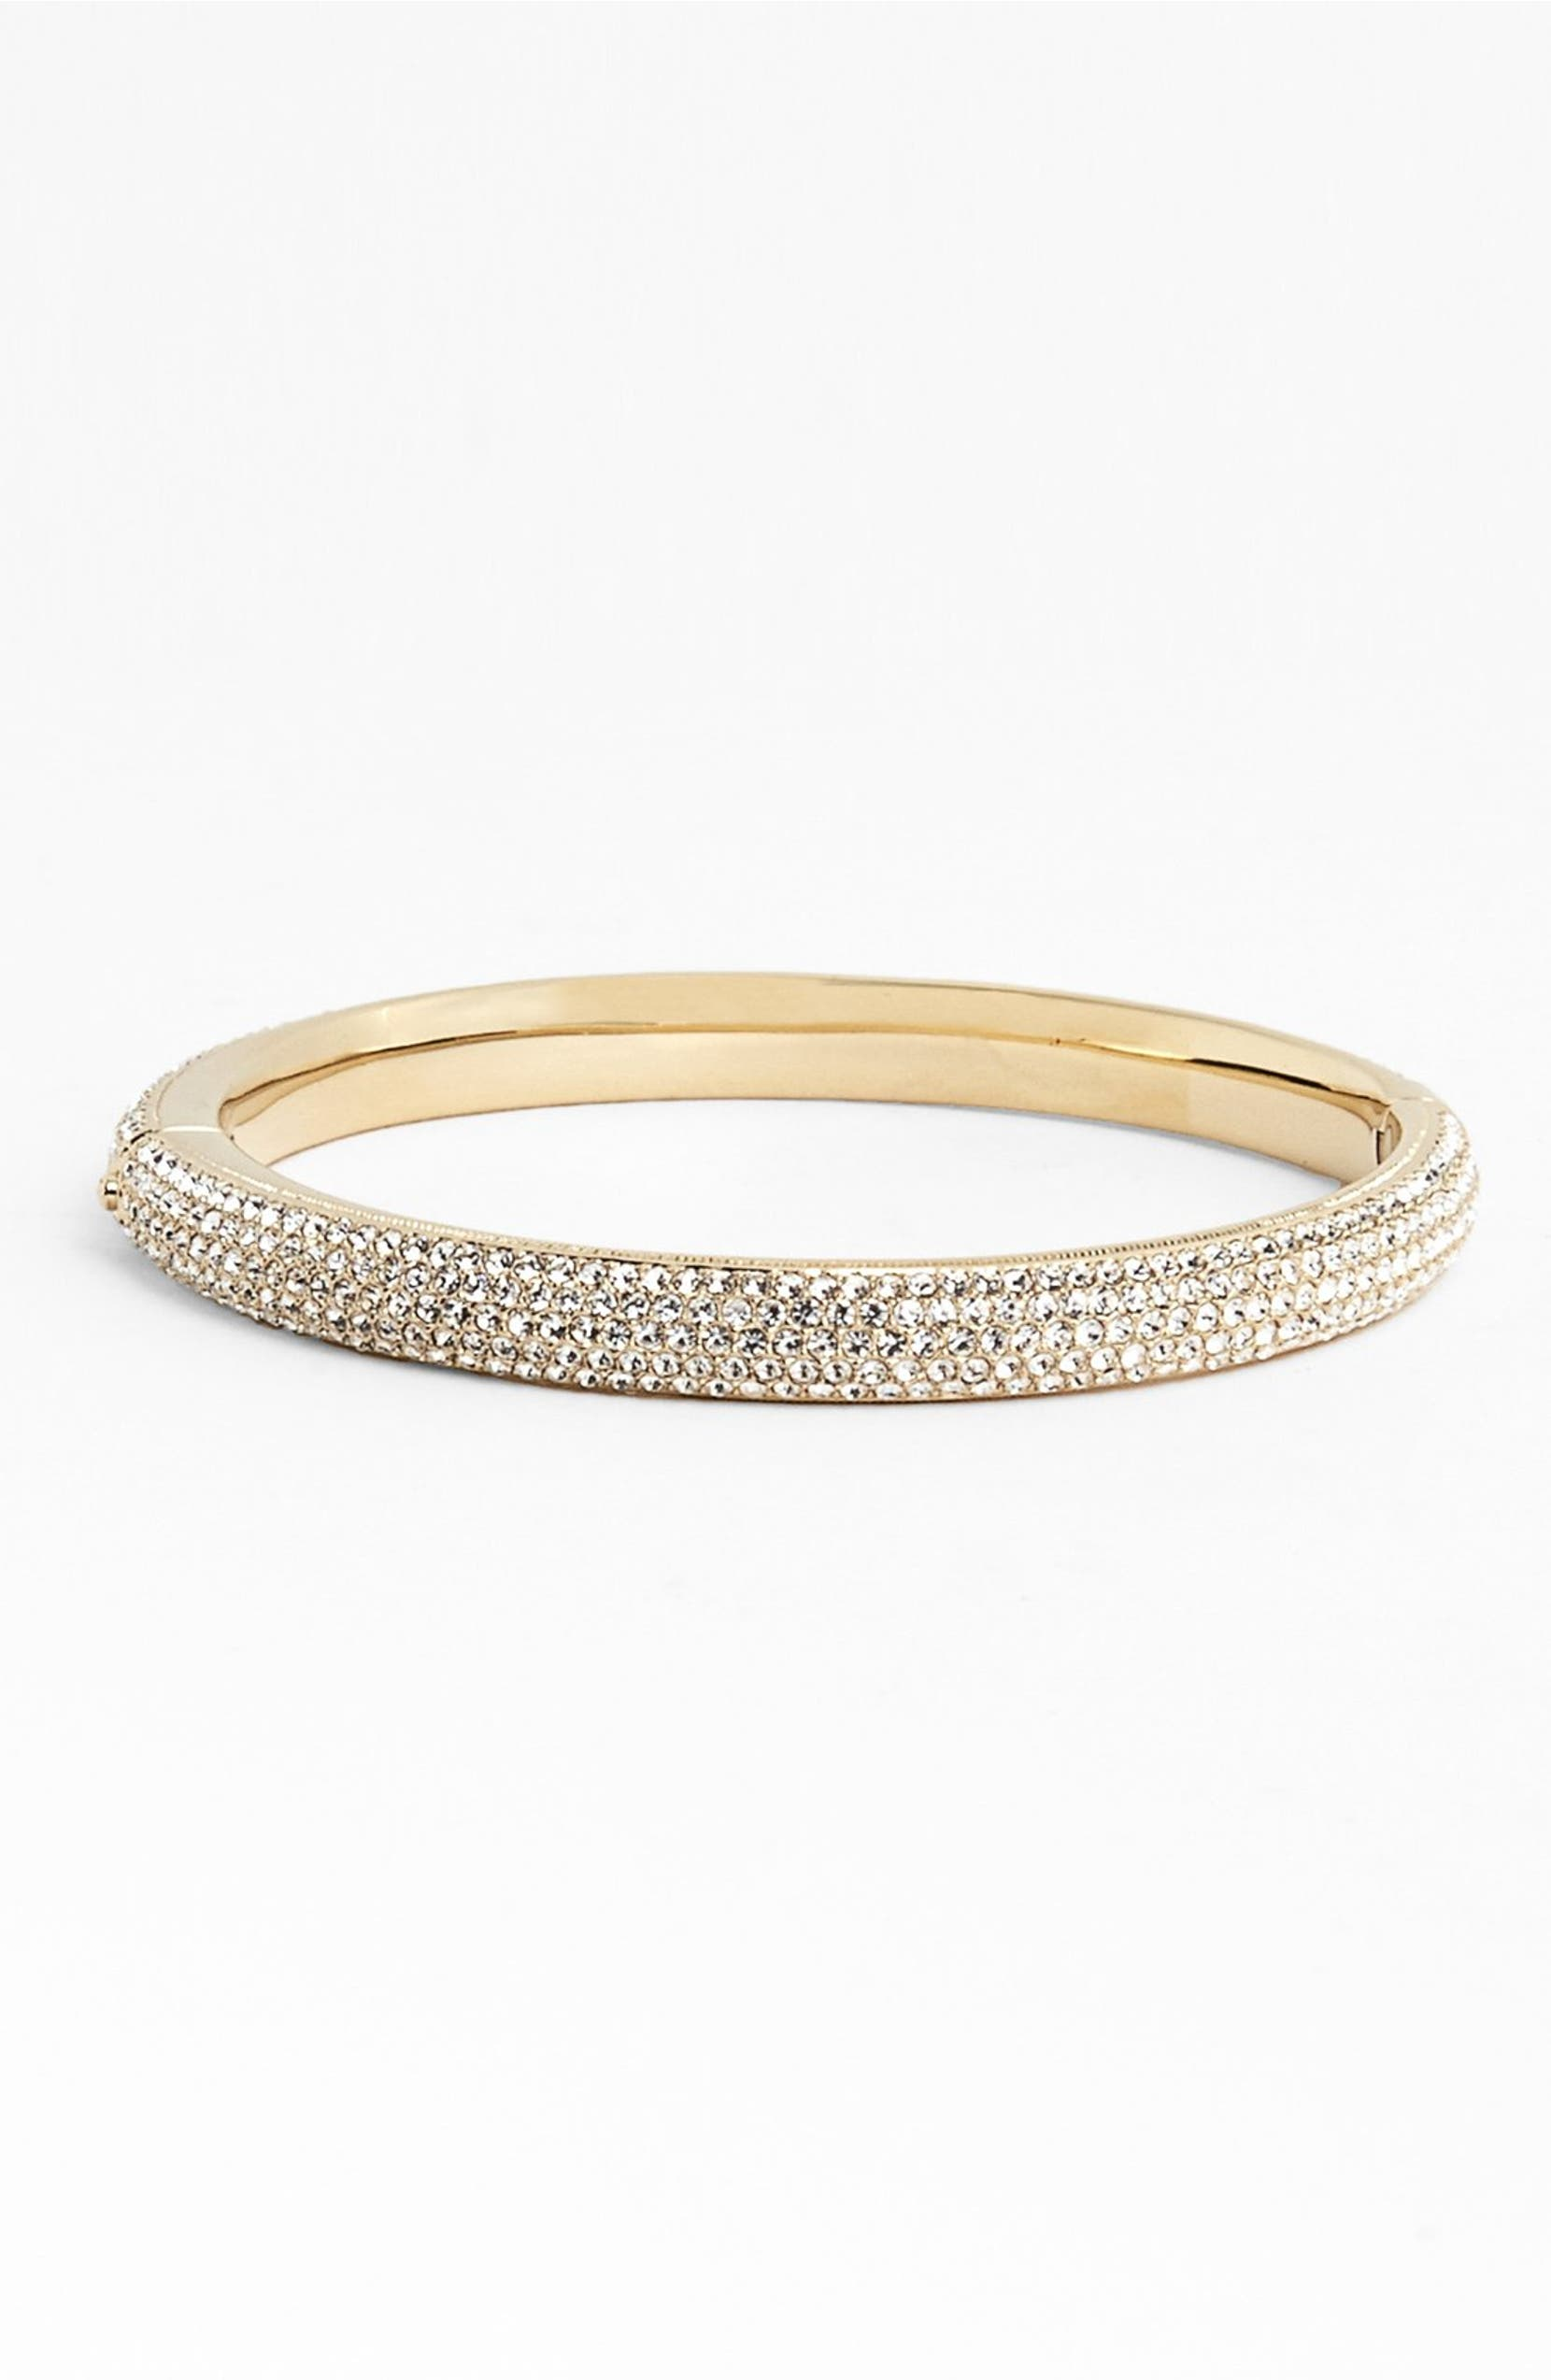 sloane street s bangle sterling product ss bracelet pave silver white sdcb diamond graduated bangles